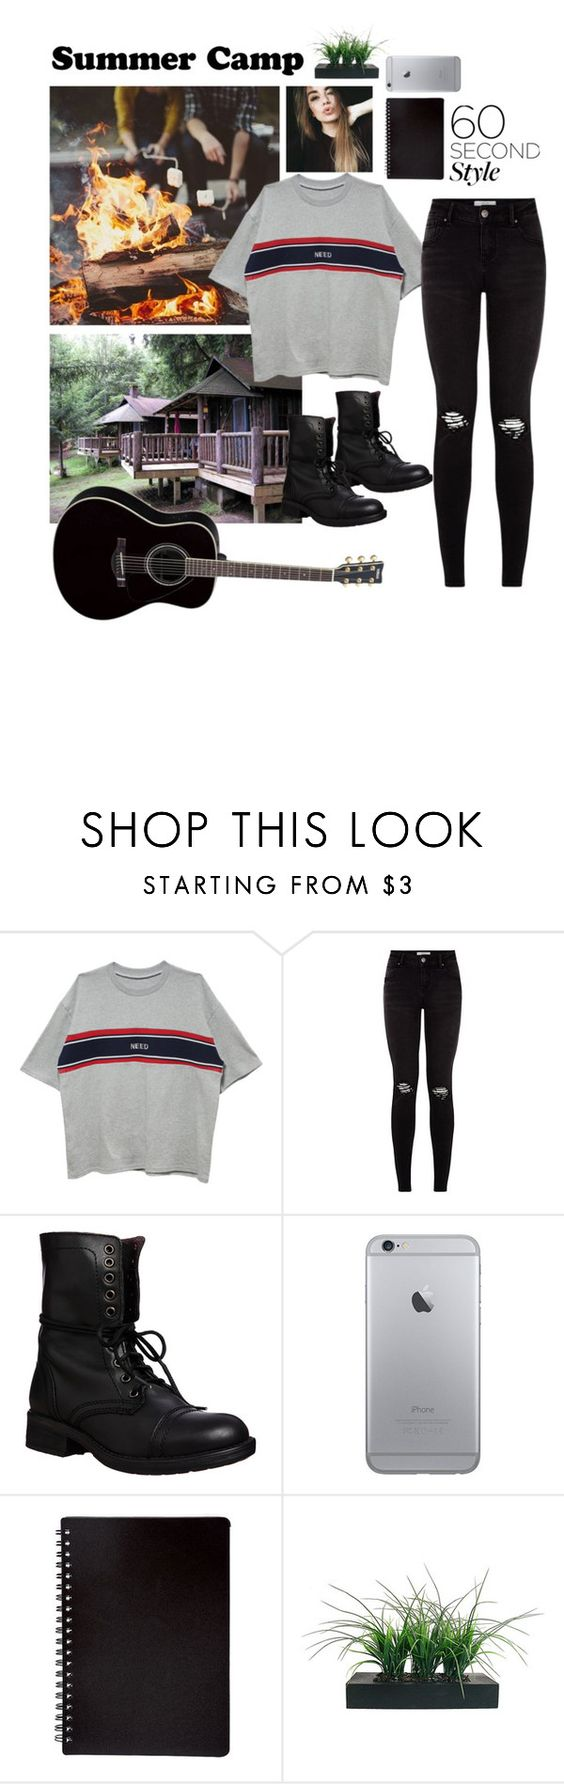 """""""Summer camp"""" by youngsmile ❤ liked on Polyvore featuring Steve Madden, Yamaha, Vintage, summercamp and 60secondstyle"""